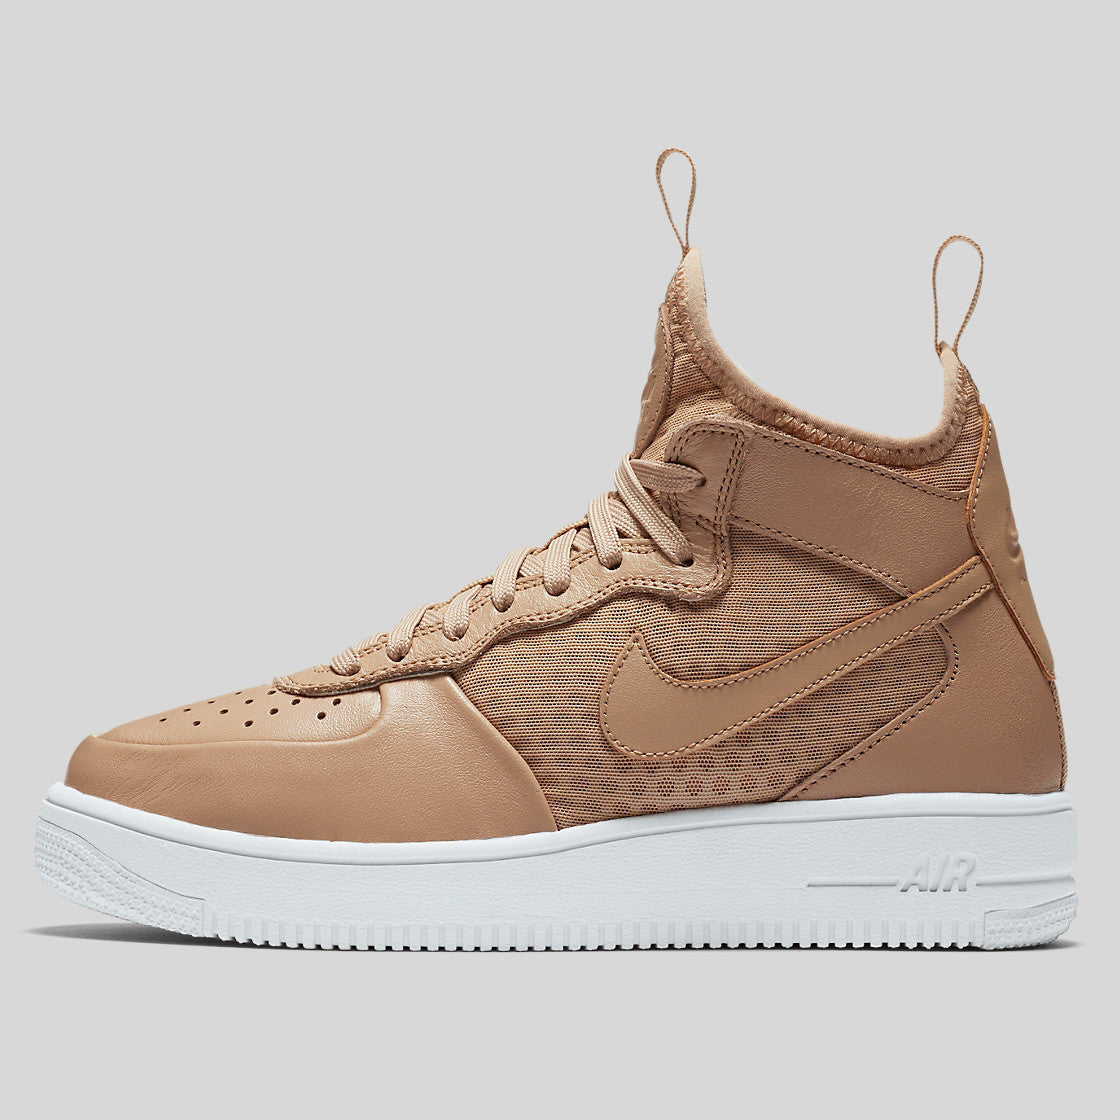 newest collection dfa1a 08afb ... closeout nike wmns air force 1 ultraforce mid vachetta tan white 864025  200 70cbf 1d24f